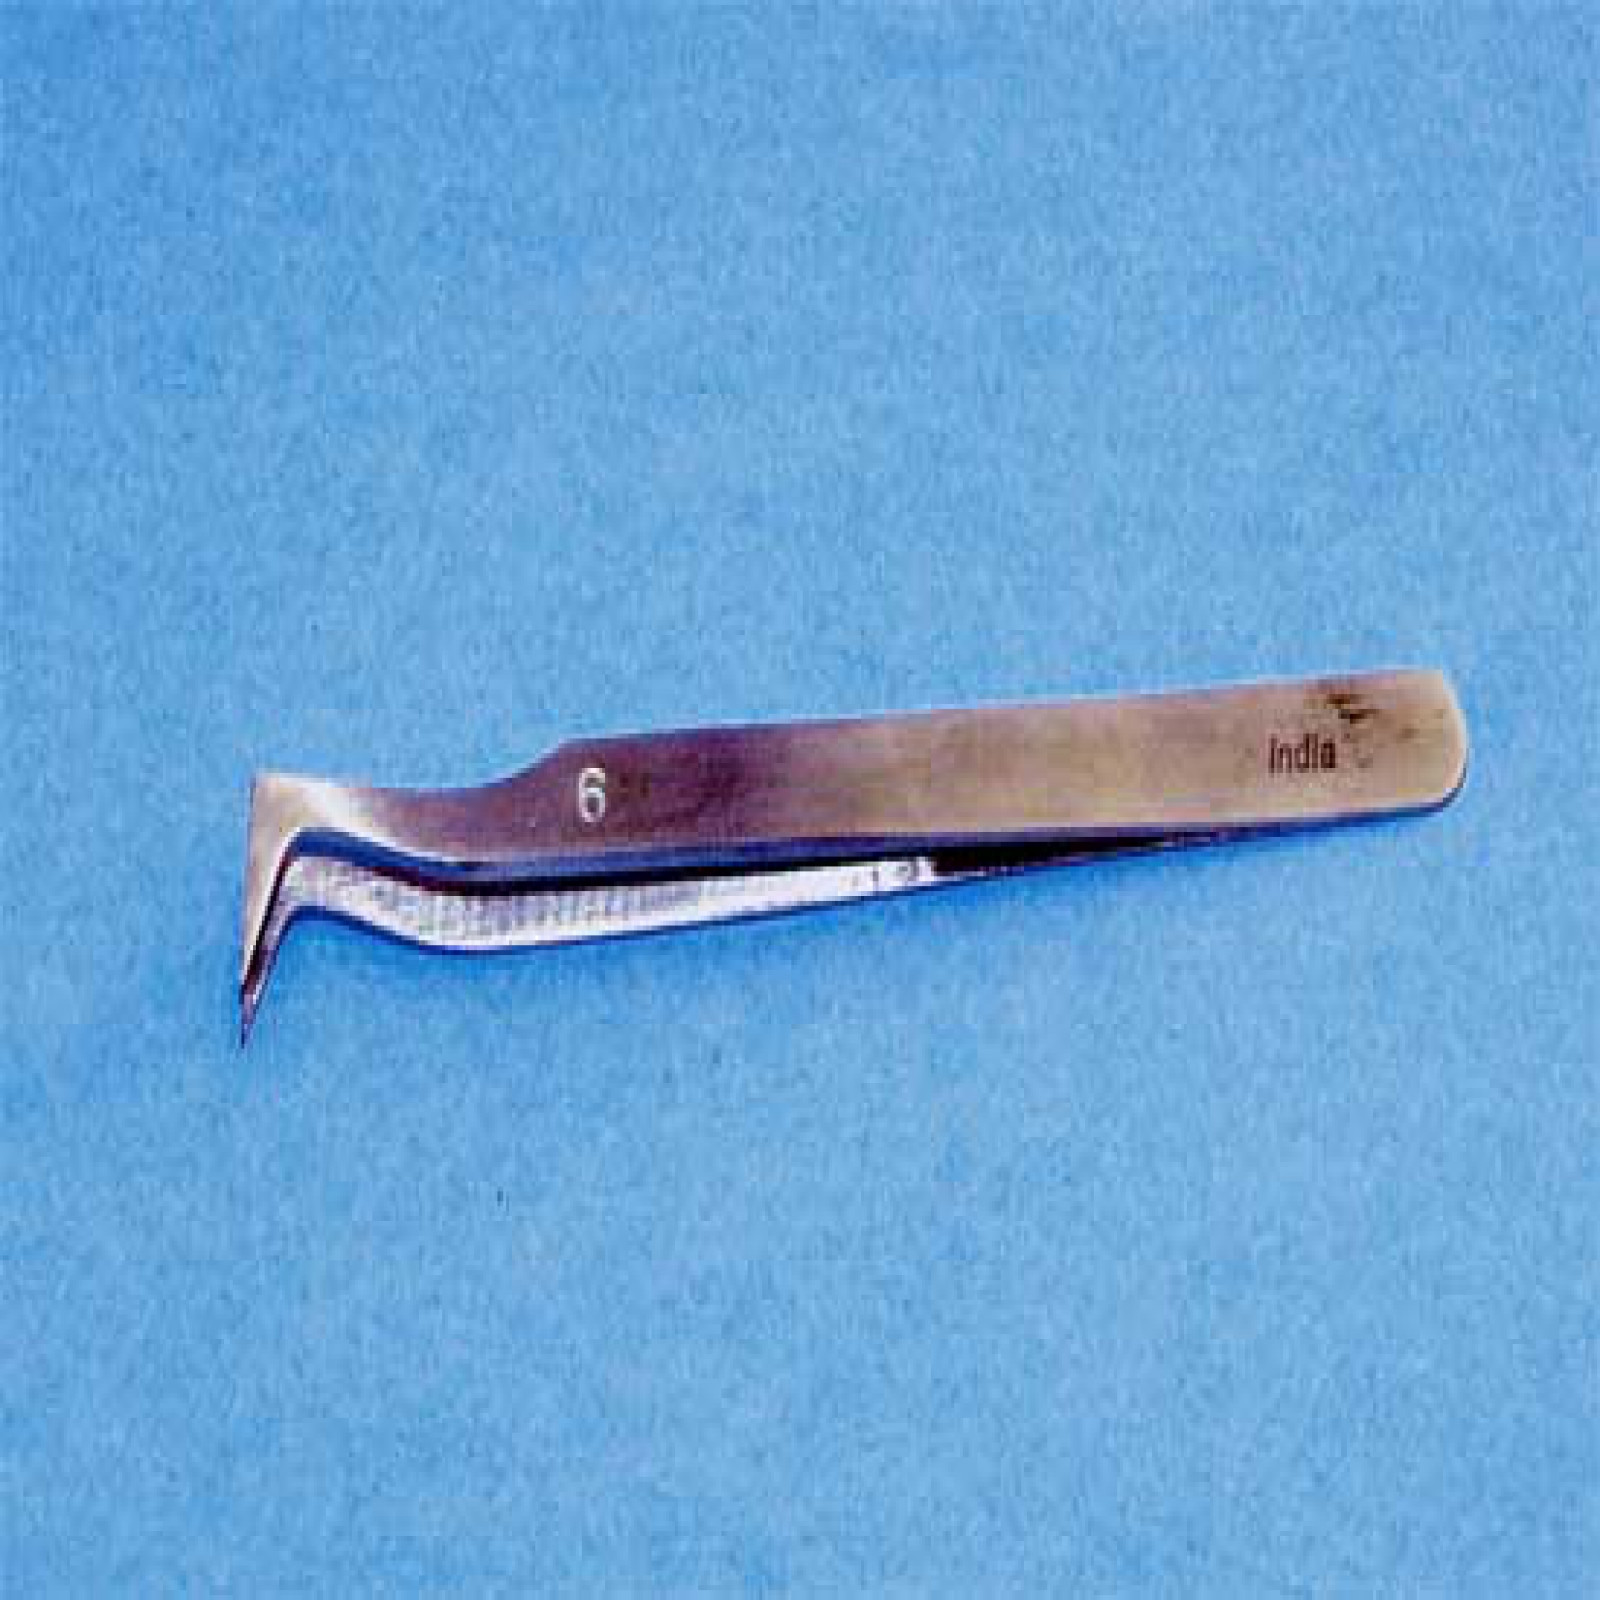 FINE BENT POINT TWEEZER #6